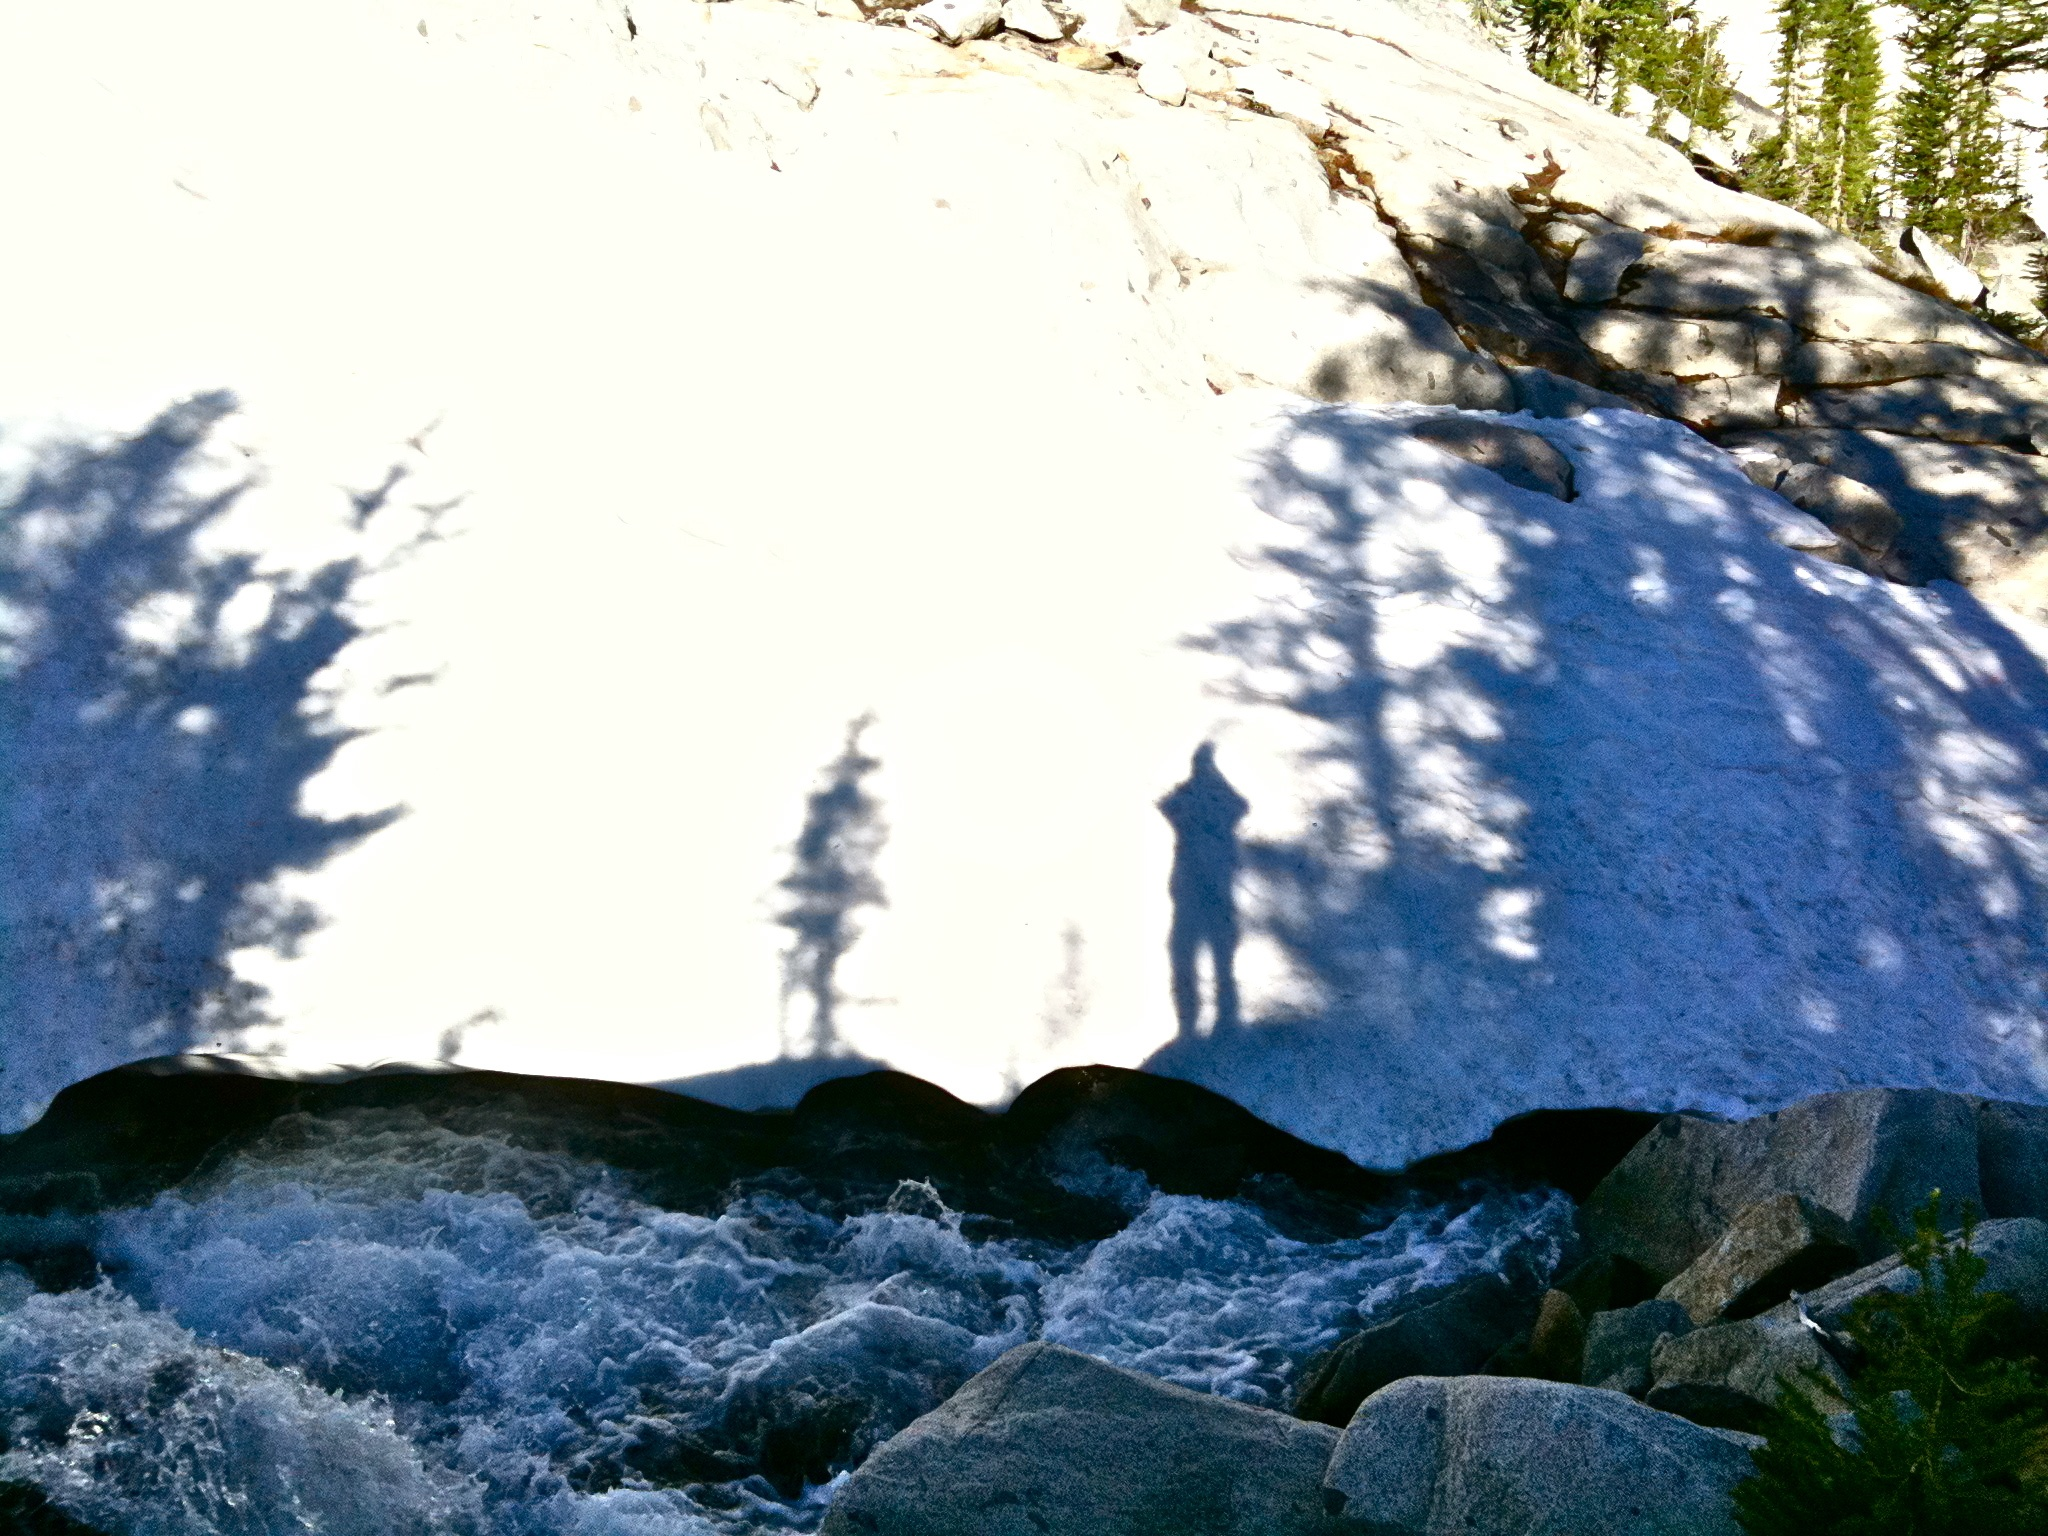 Snow, Shadow, Water, Light.